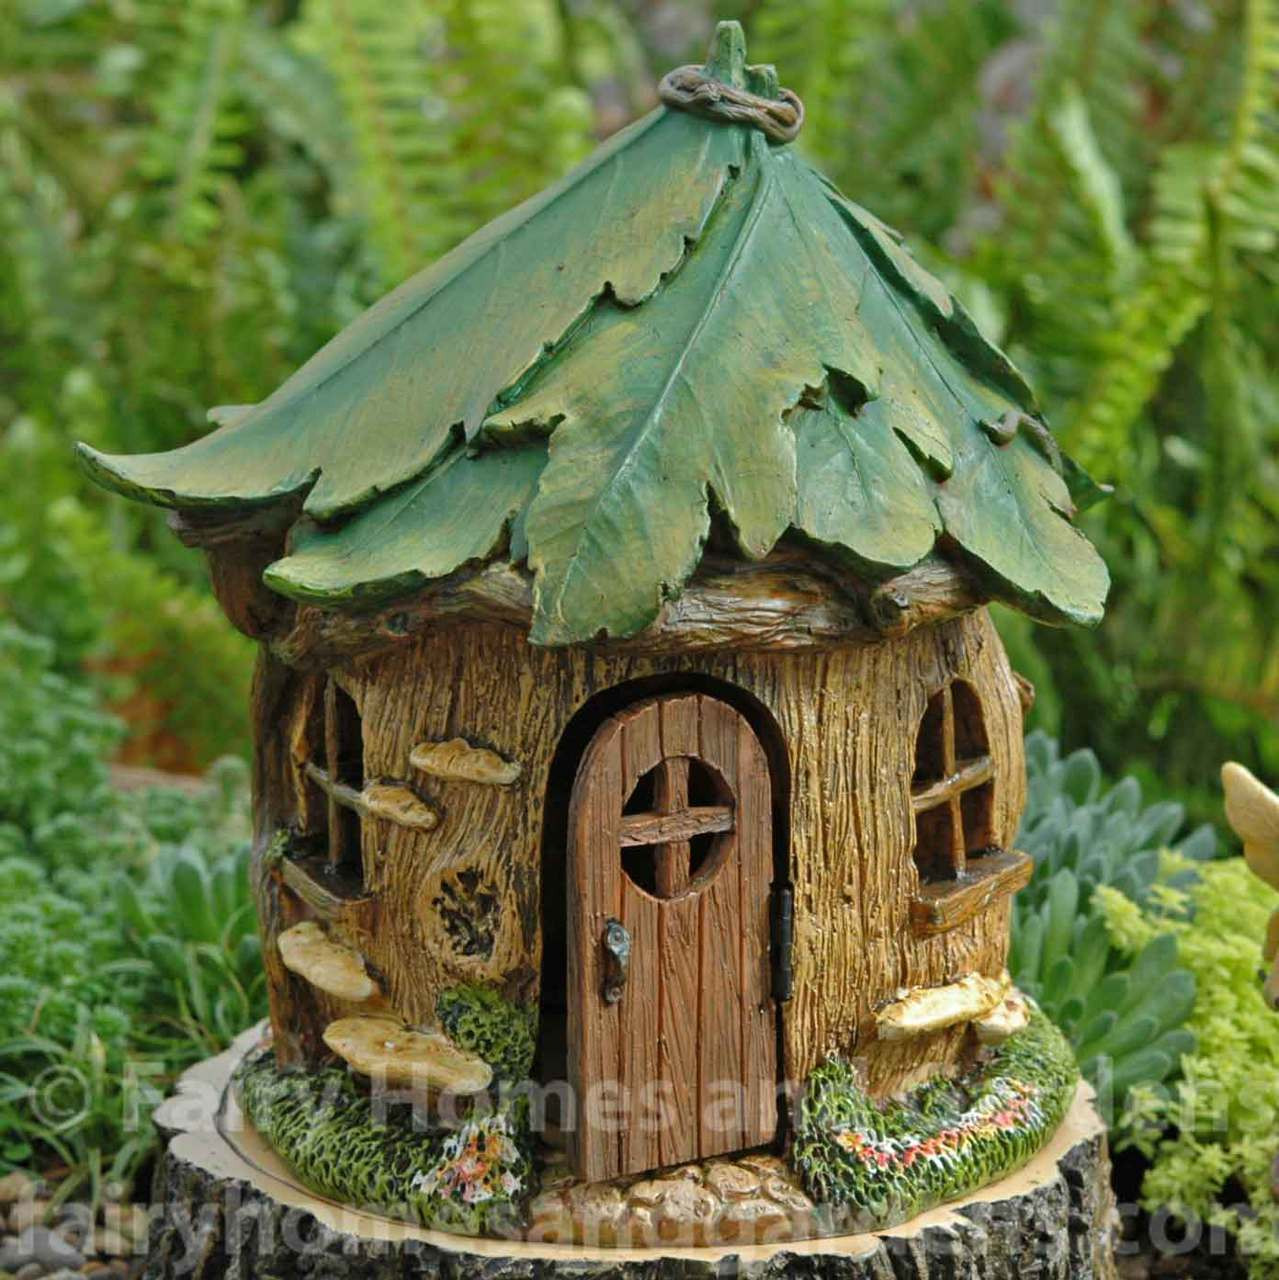 10 Images About Apanghar House Designs On Pinterest: Fairy Houses With Doors That Open